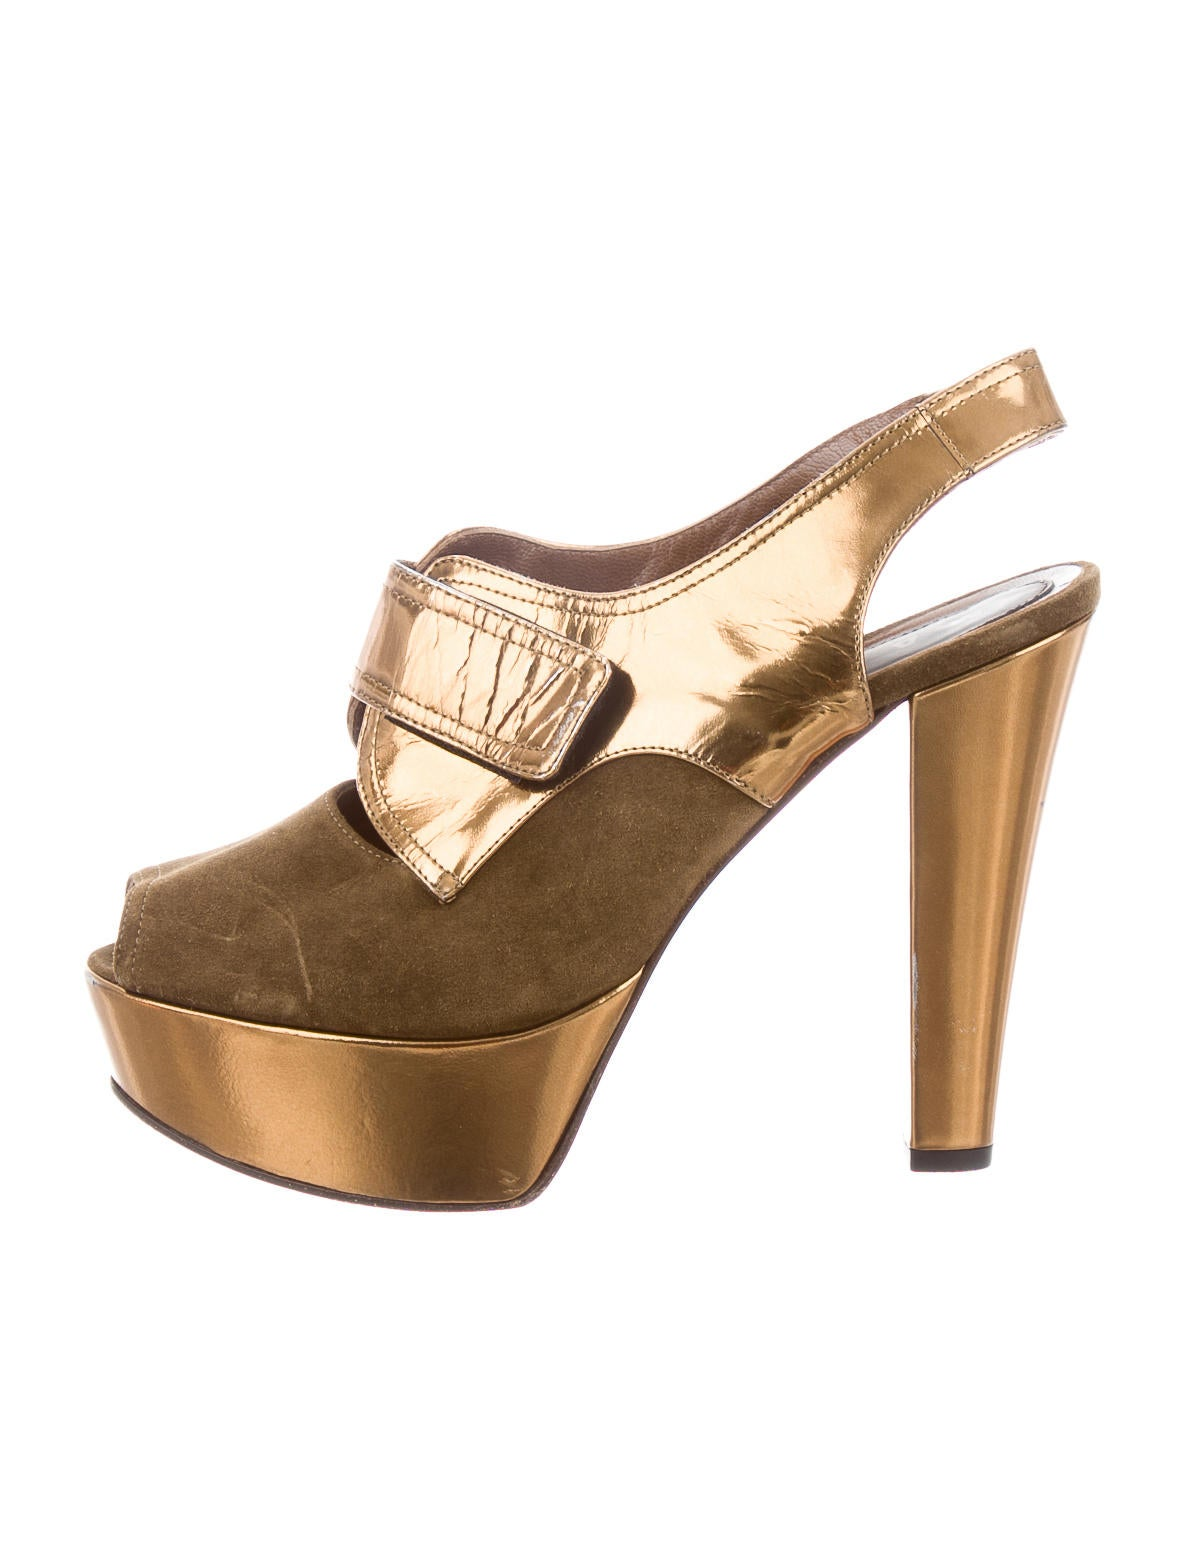 marni metallic platform pumps shoes man37595 the